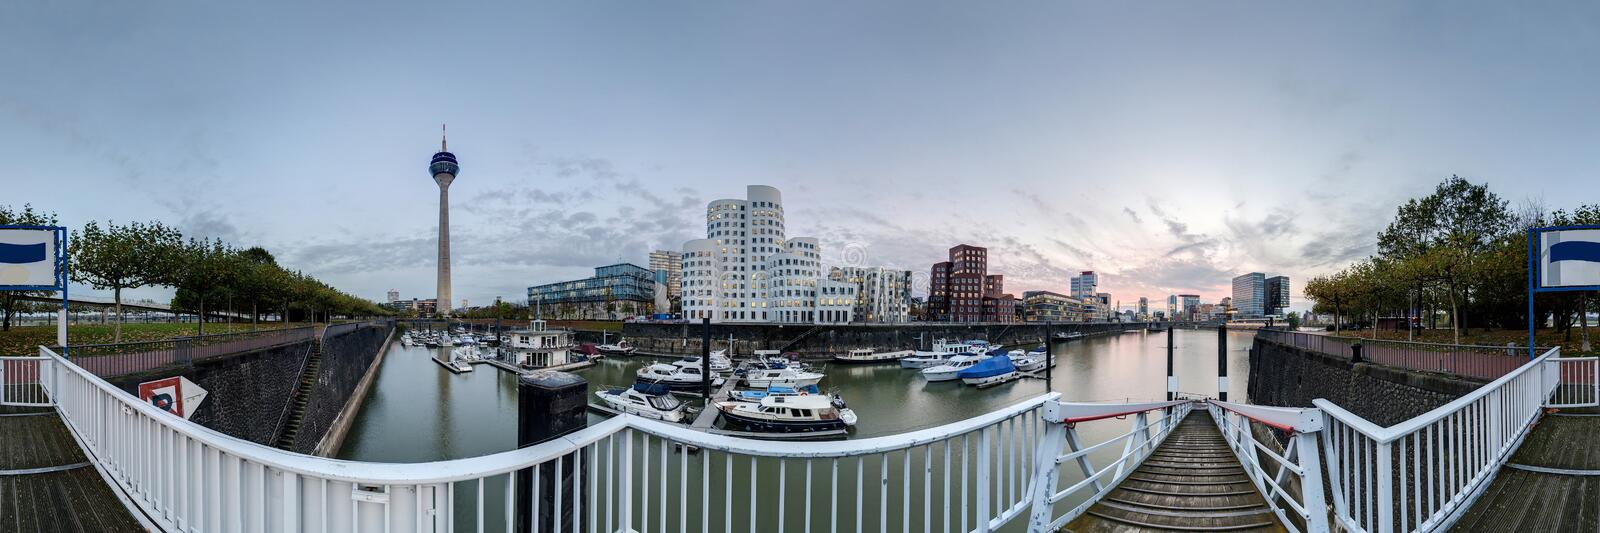 Download Dusseldorf At Dusk Royalty Free Stock Images - Image: 27539919